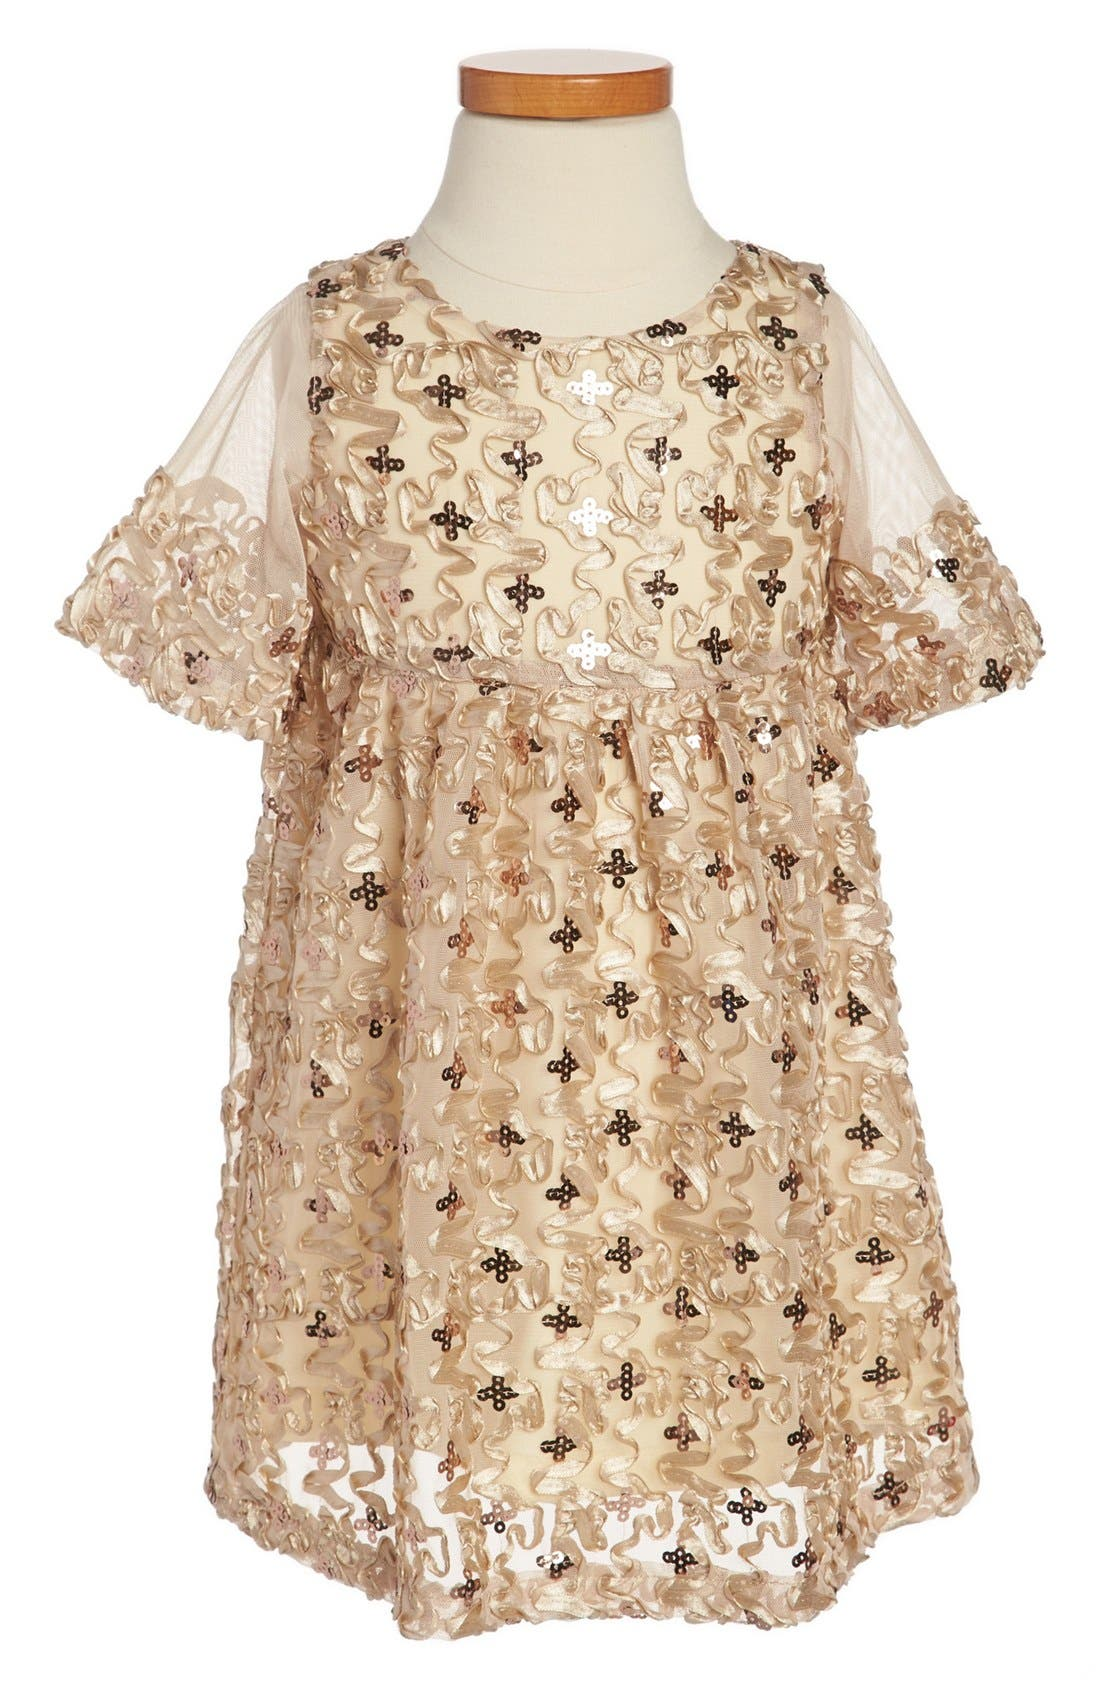 Alternate Image 1 Selected - Laundry by Shelli Segal Sequin Dress (Toddler Girls)